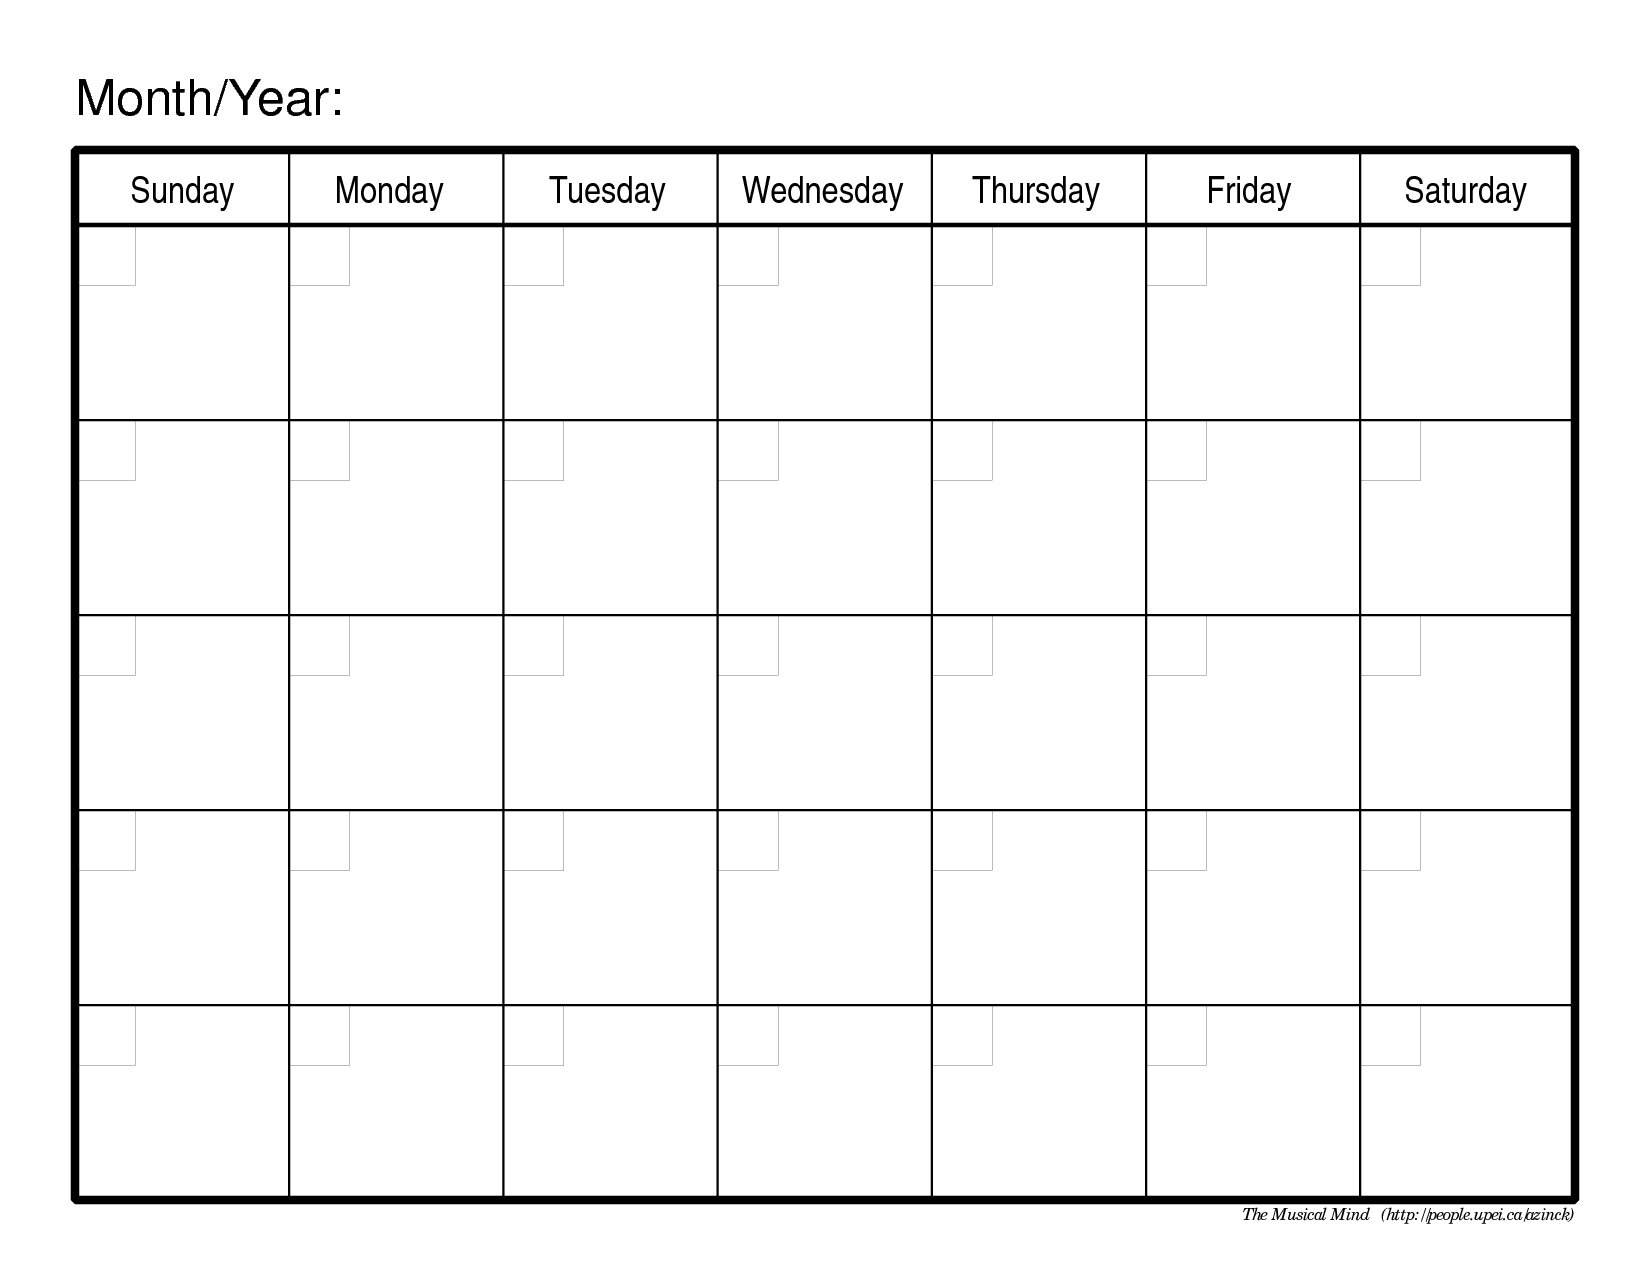 Monthly Calendar Template | Free Printable Calendar  Free Calendar Templates Printable